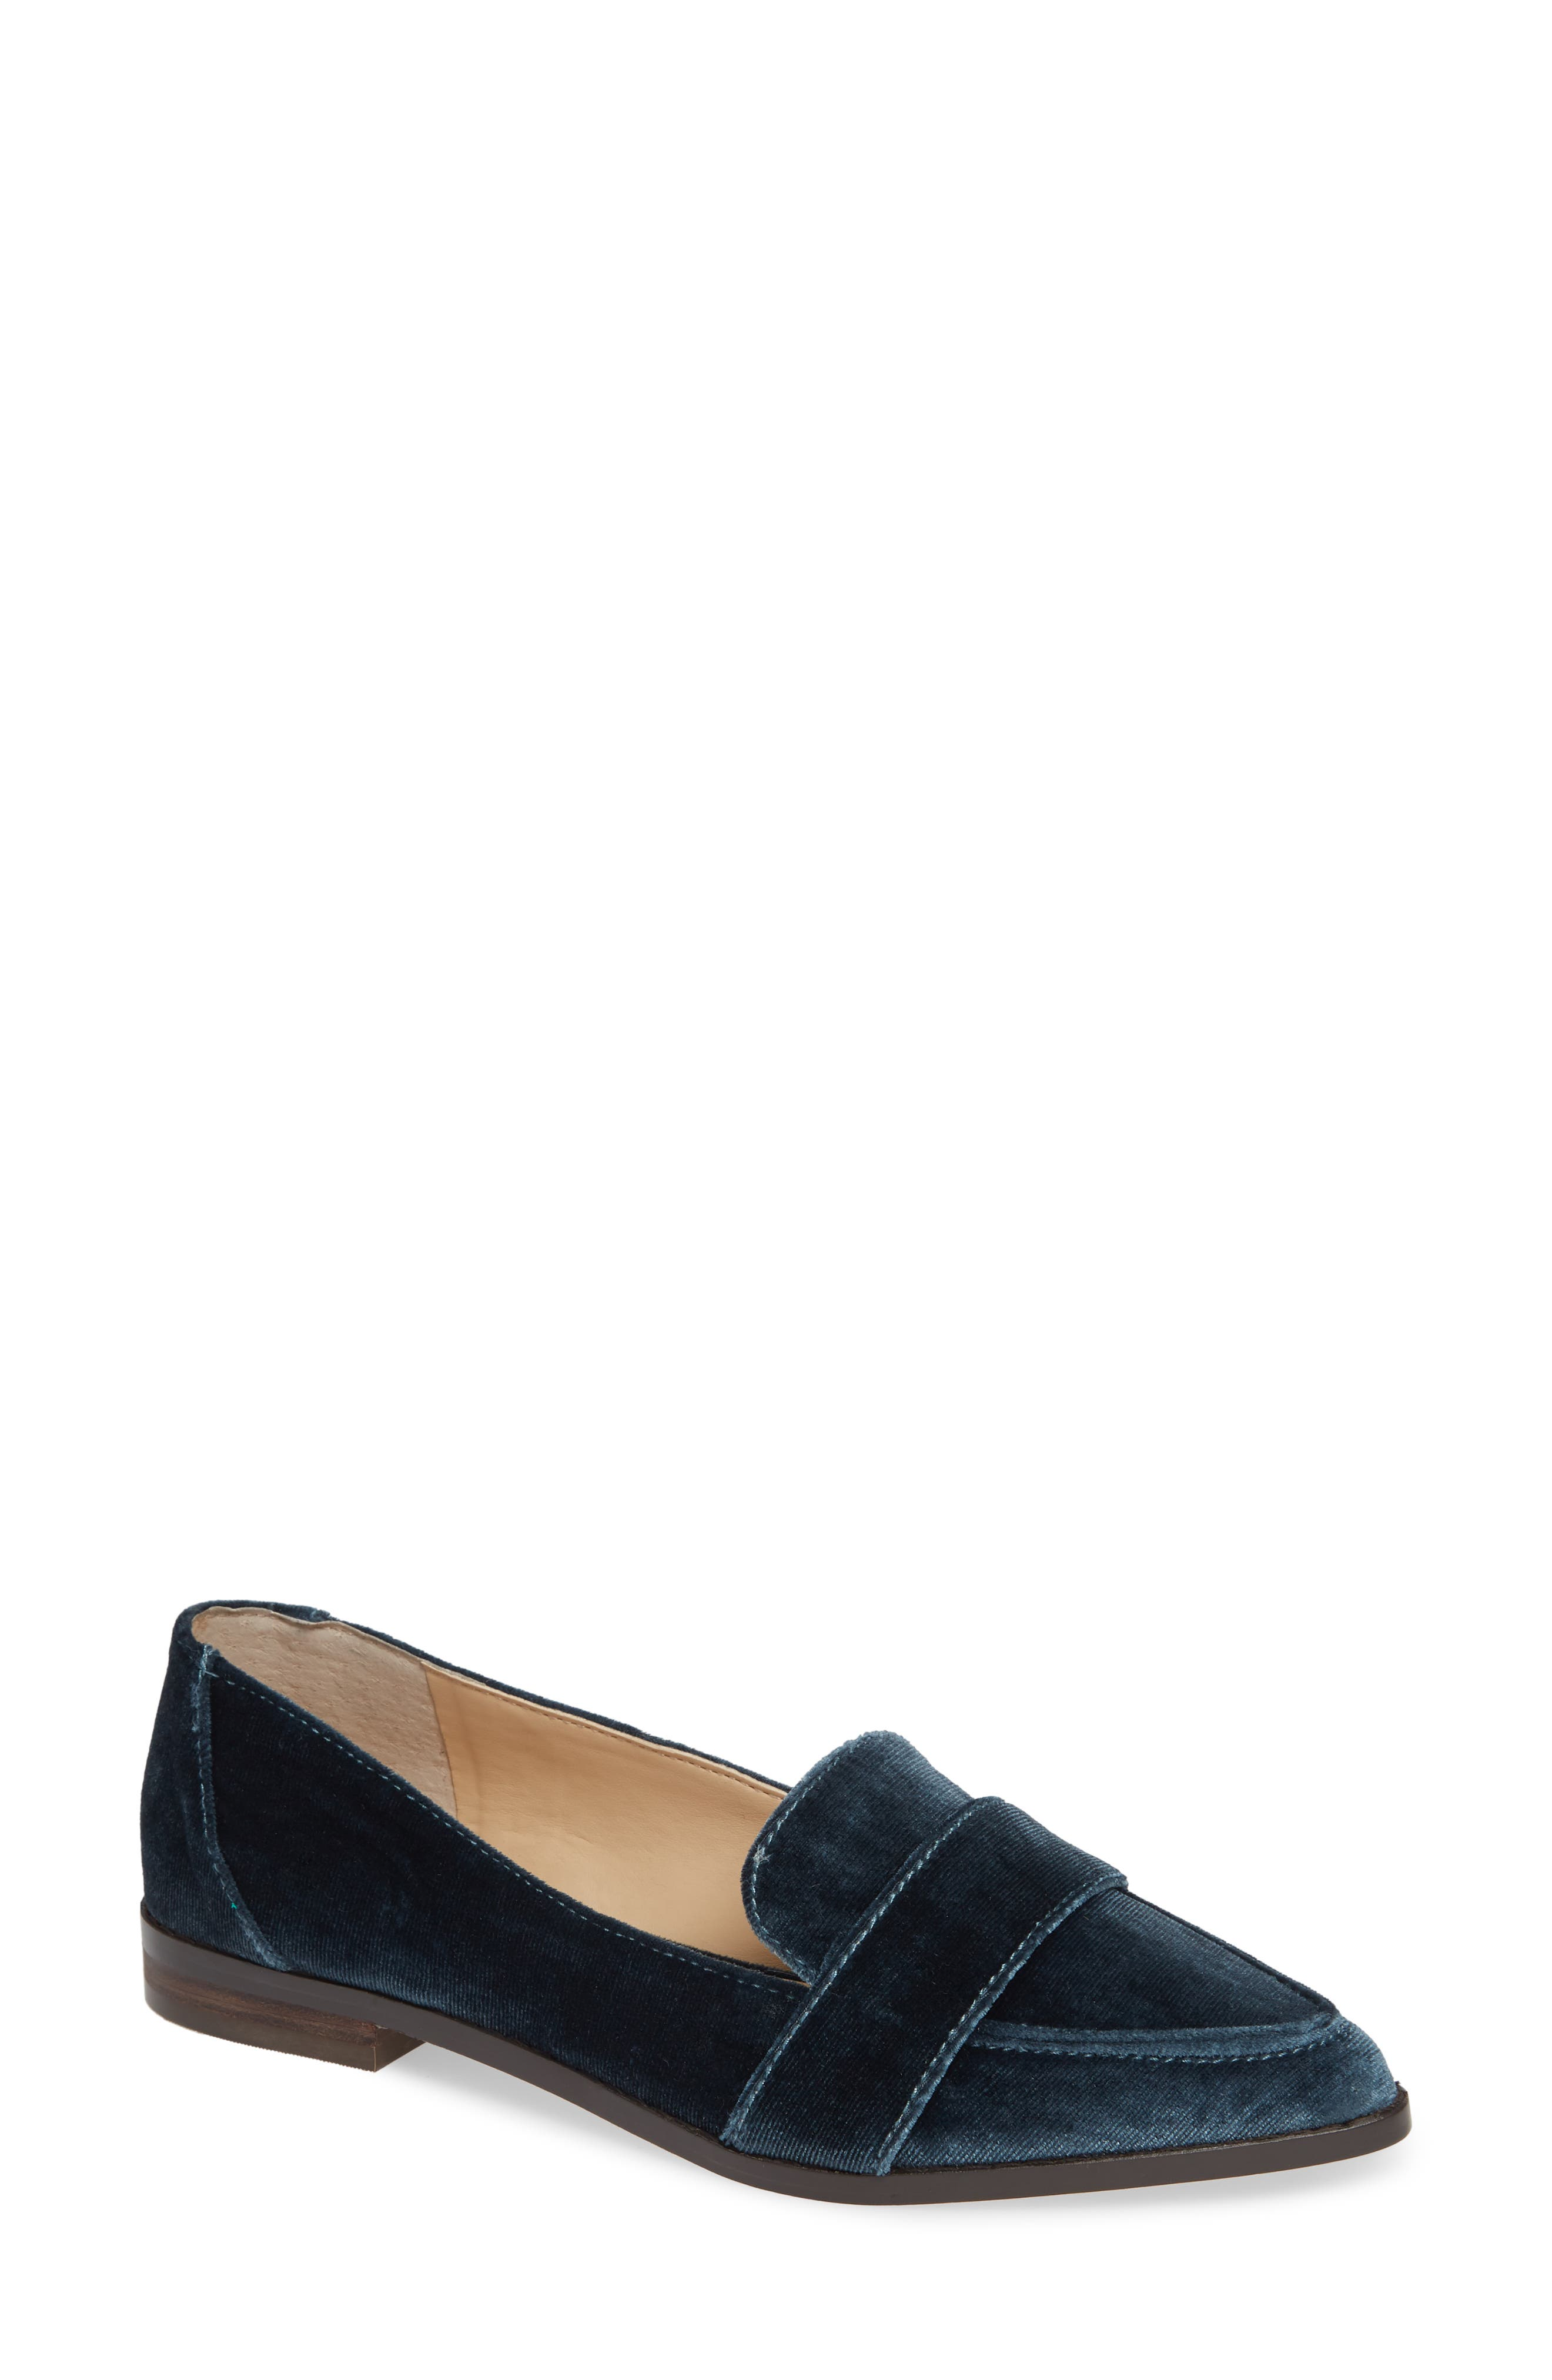 Edie Pointy Toe Loafer,                             Main thumbnail 1, color,